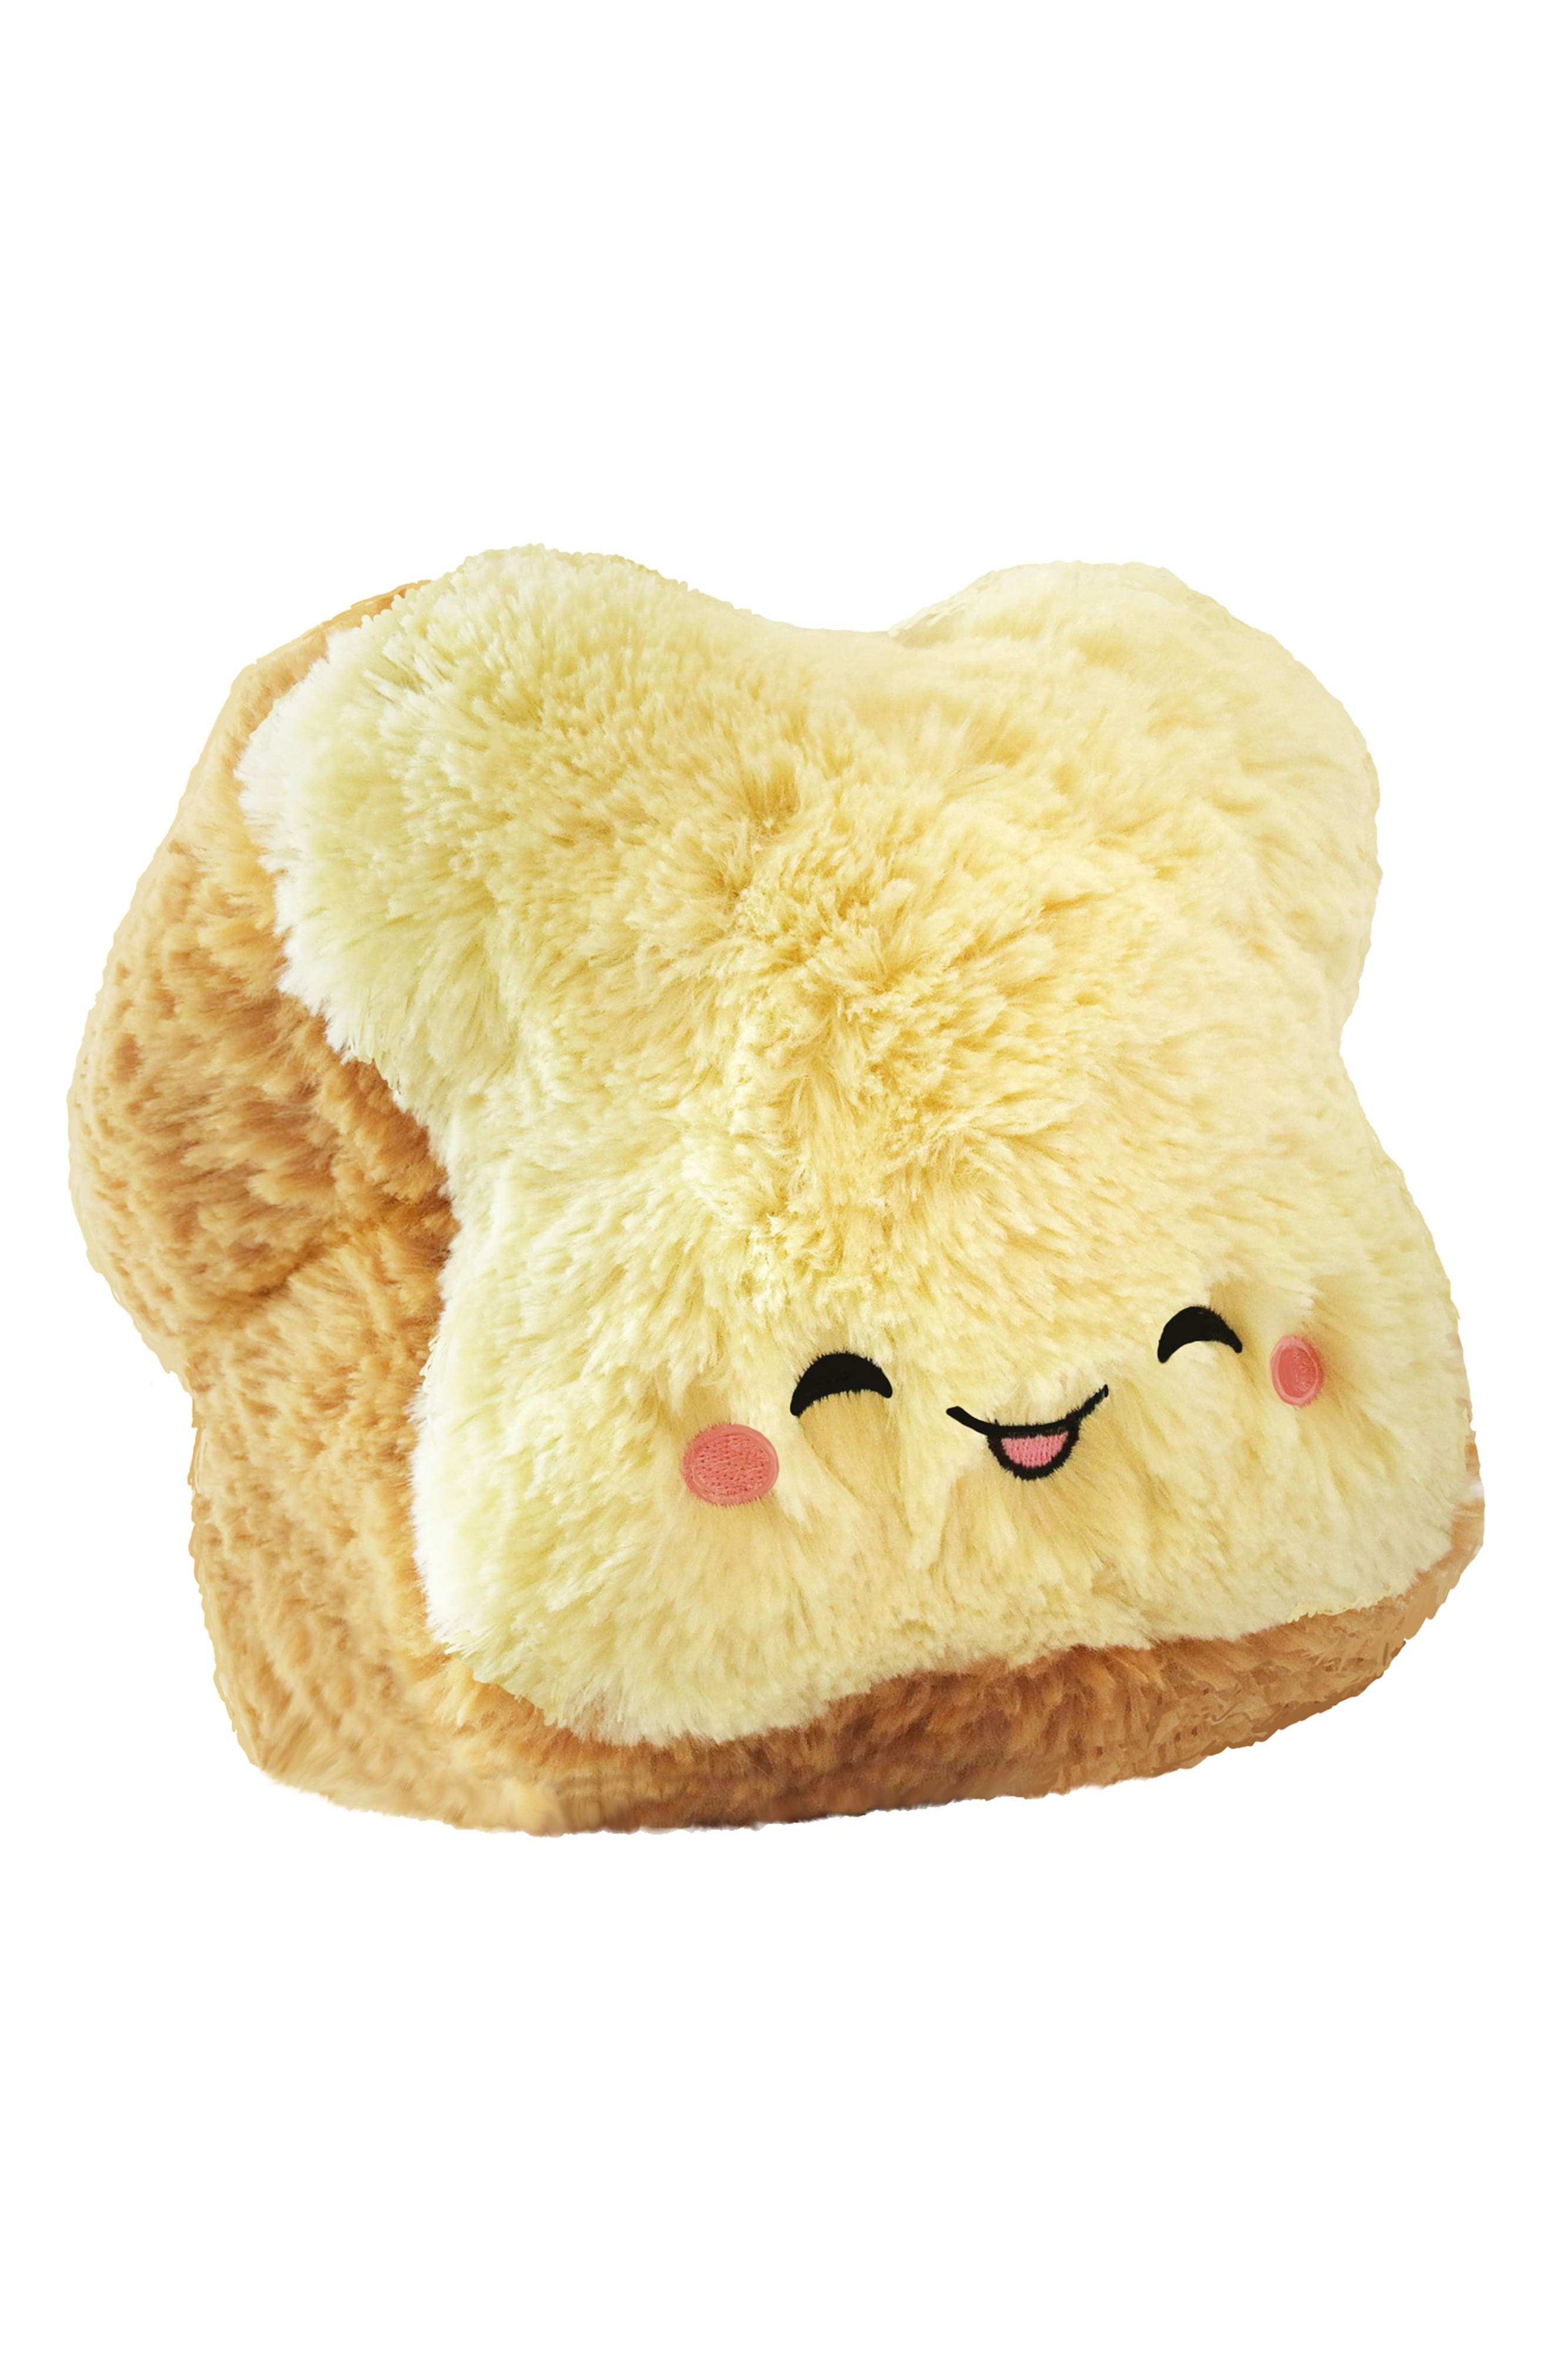 Mini Loaf of Bread Stuffed Toy,                         Main,                         color, 200